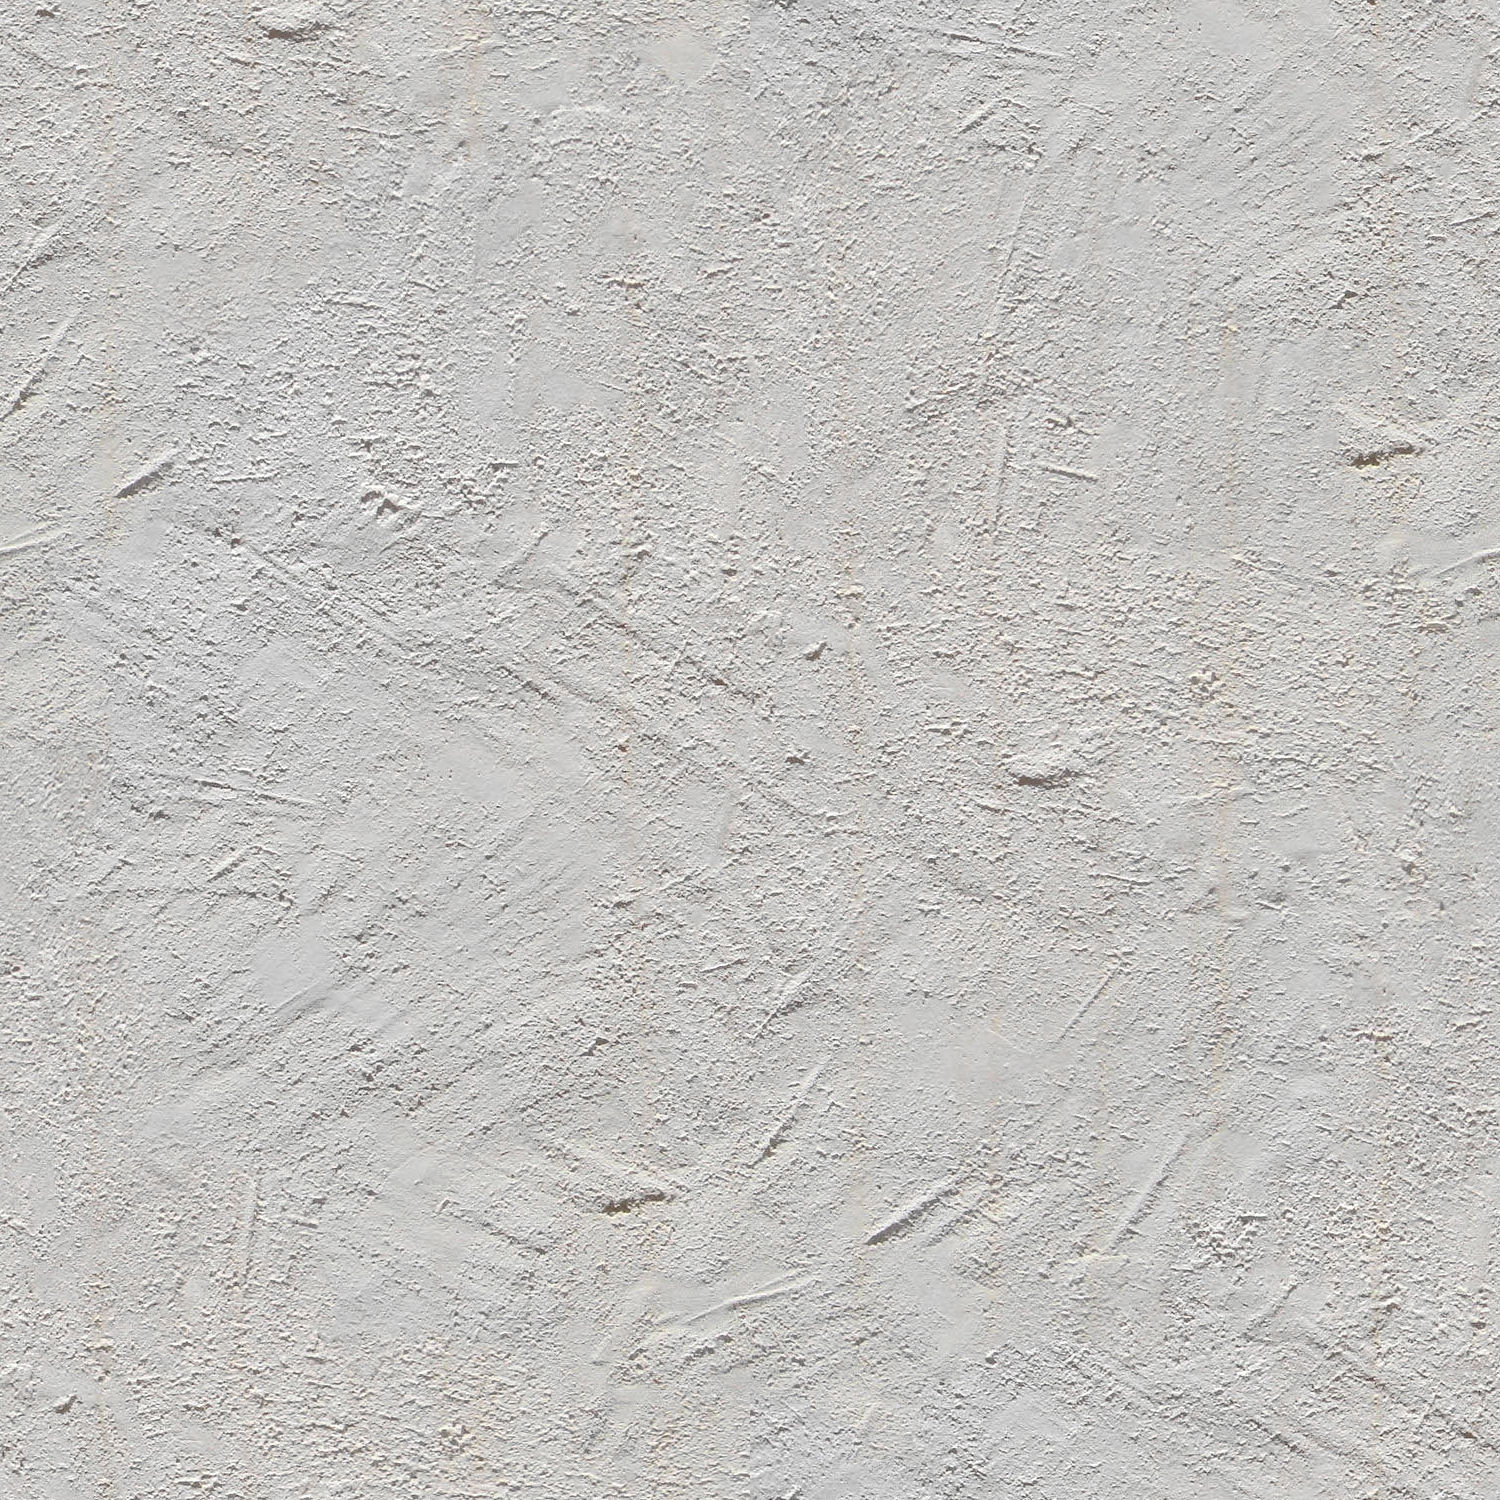 High Resolution Seamless Textures: Tileable Stucco Wall ...